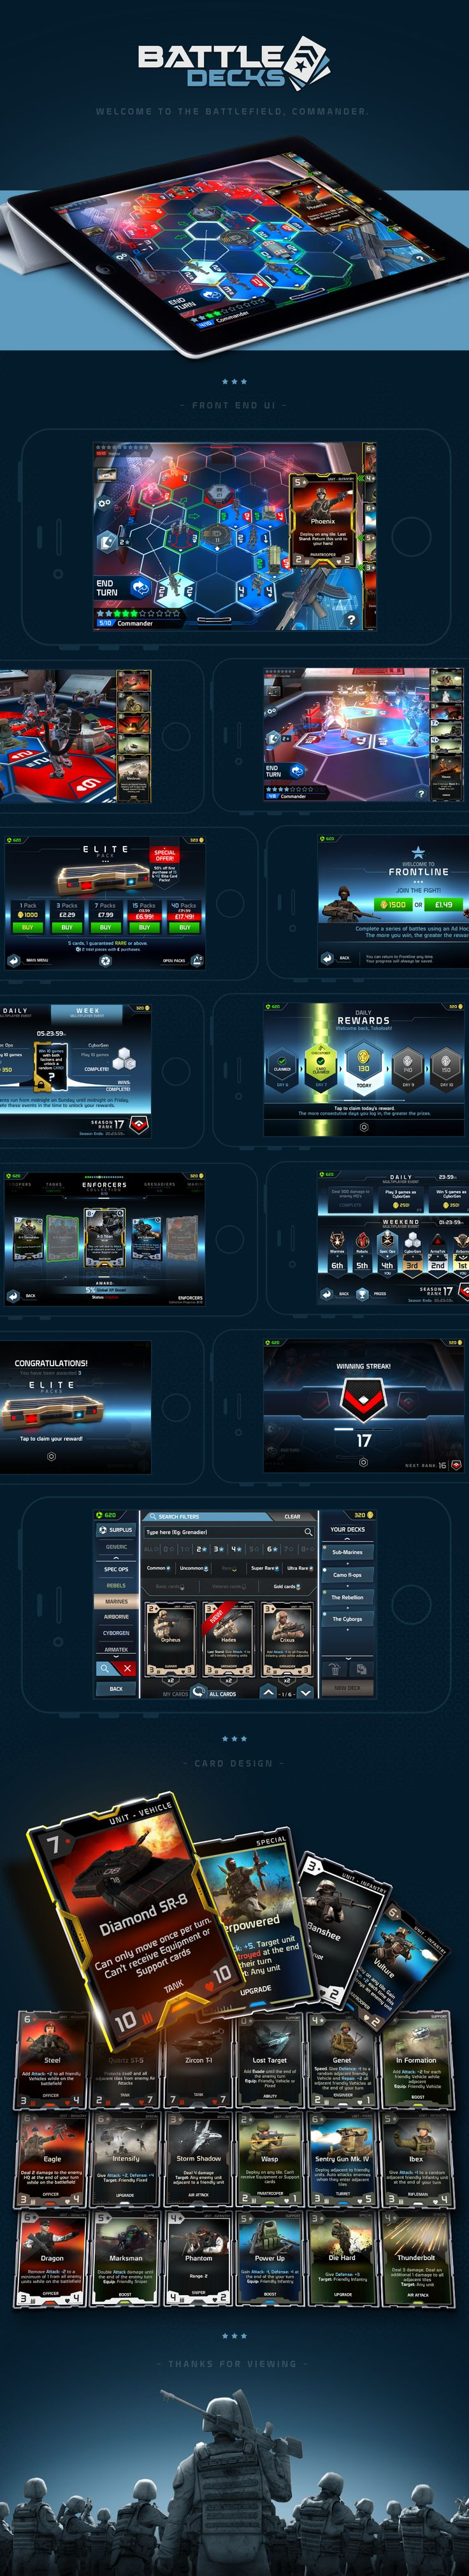 iOS Future Military Card Battling game